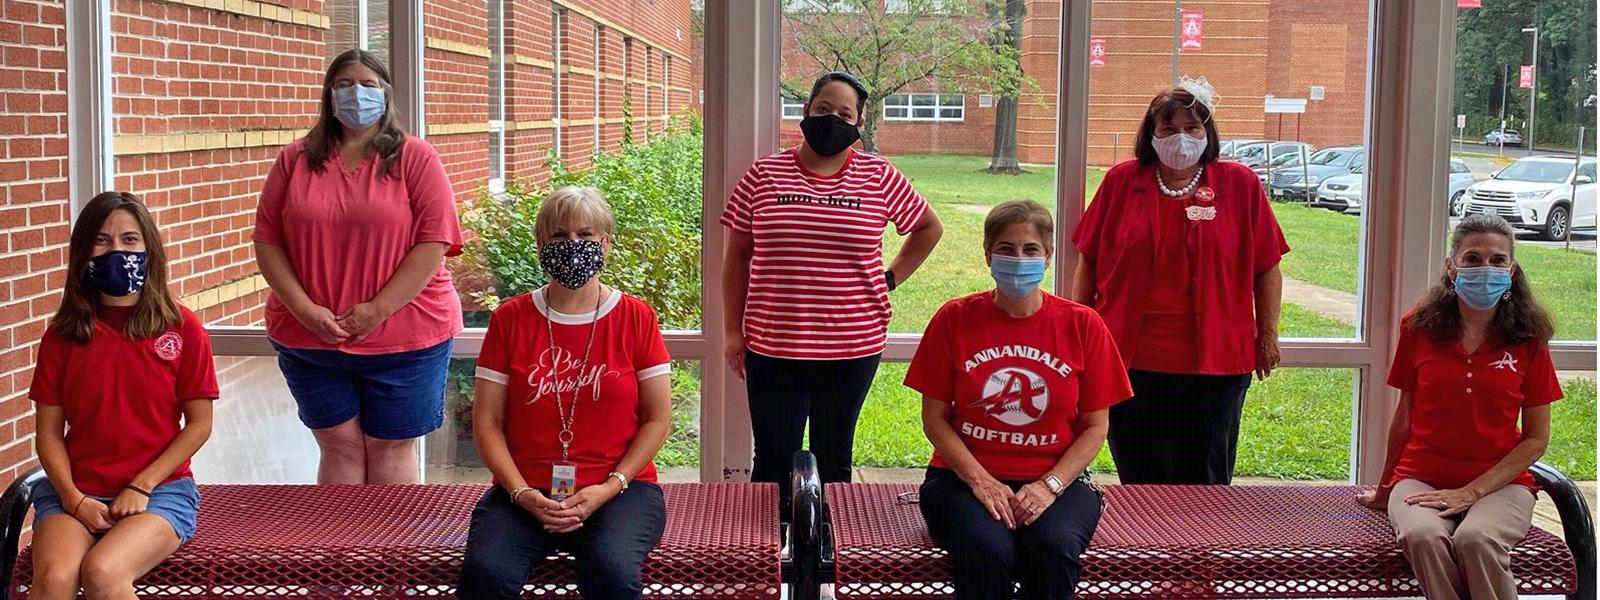 The administrative staff at Annandale High School is ready for the new school year.